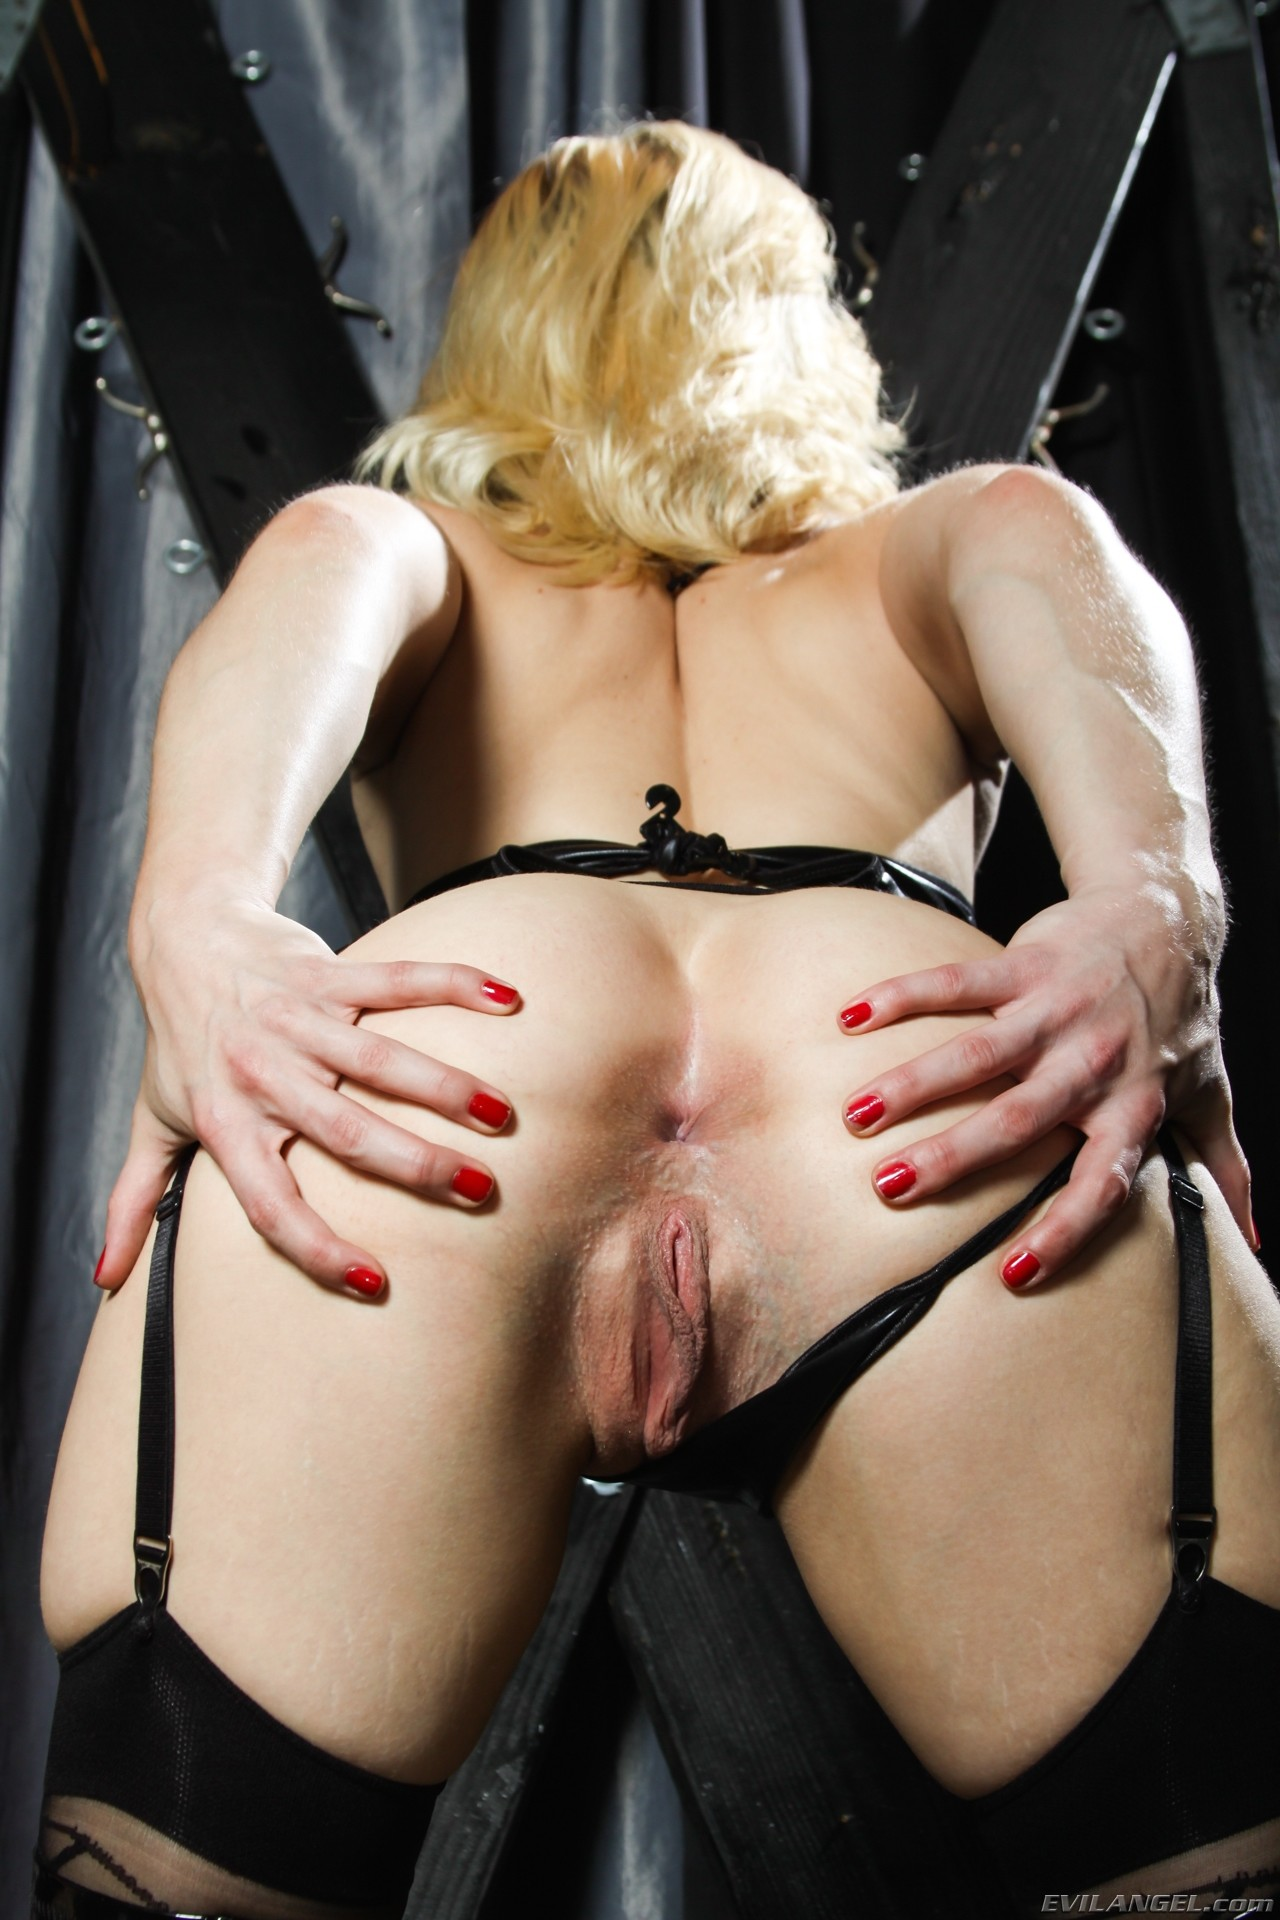 Blonde needs big toy deep google wetvibe to play her pussy - 2 5